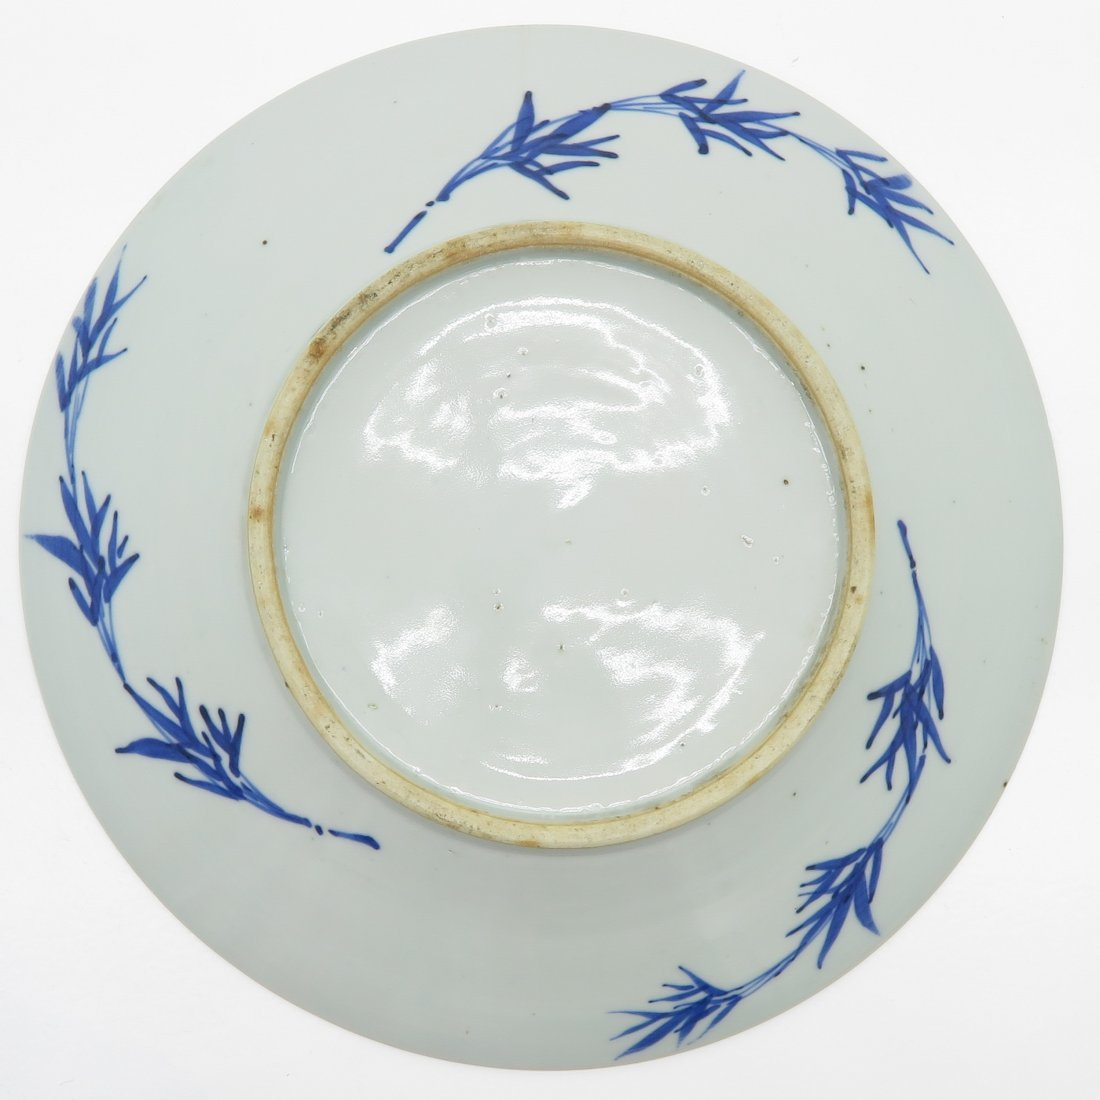 19th Century China Porcelain Plate - 2